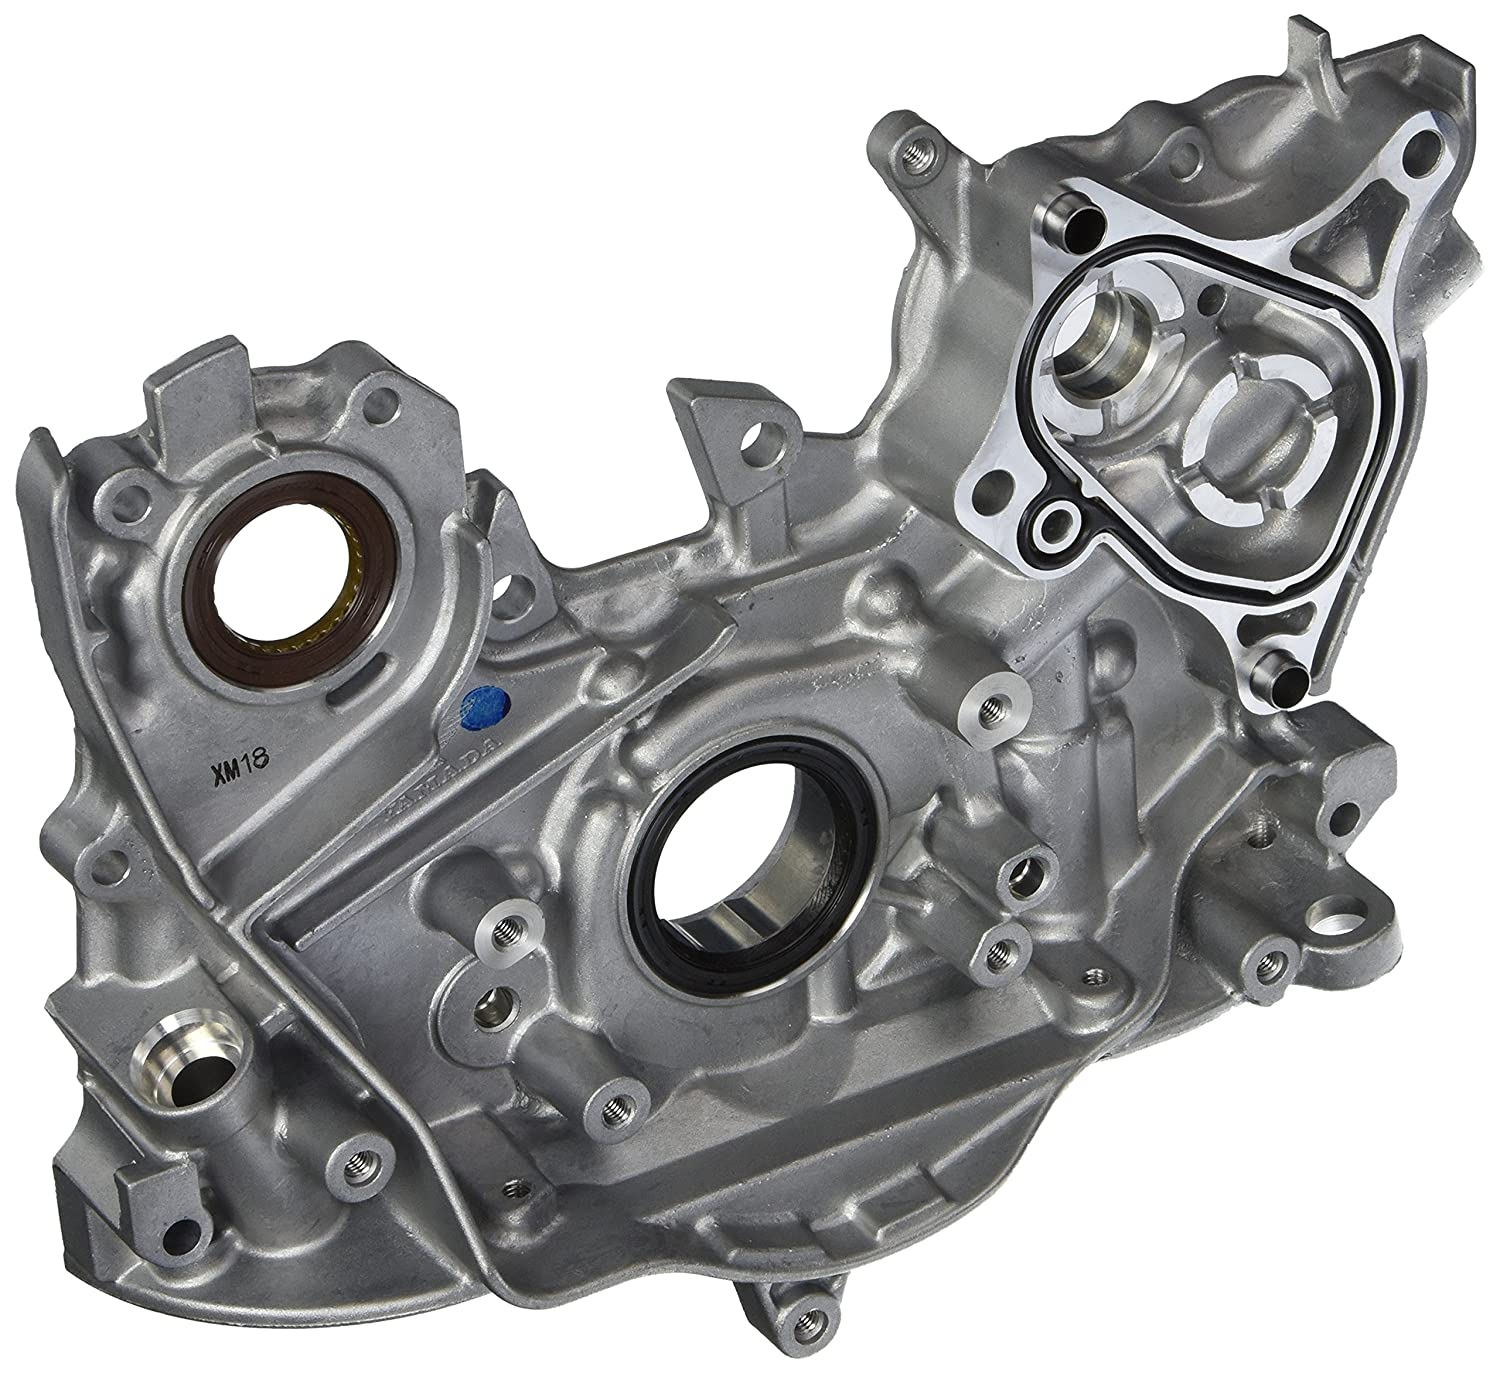 Genuine Honda 15100-P5M-A01 Oil Pump Assembly